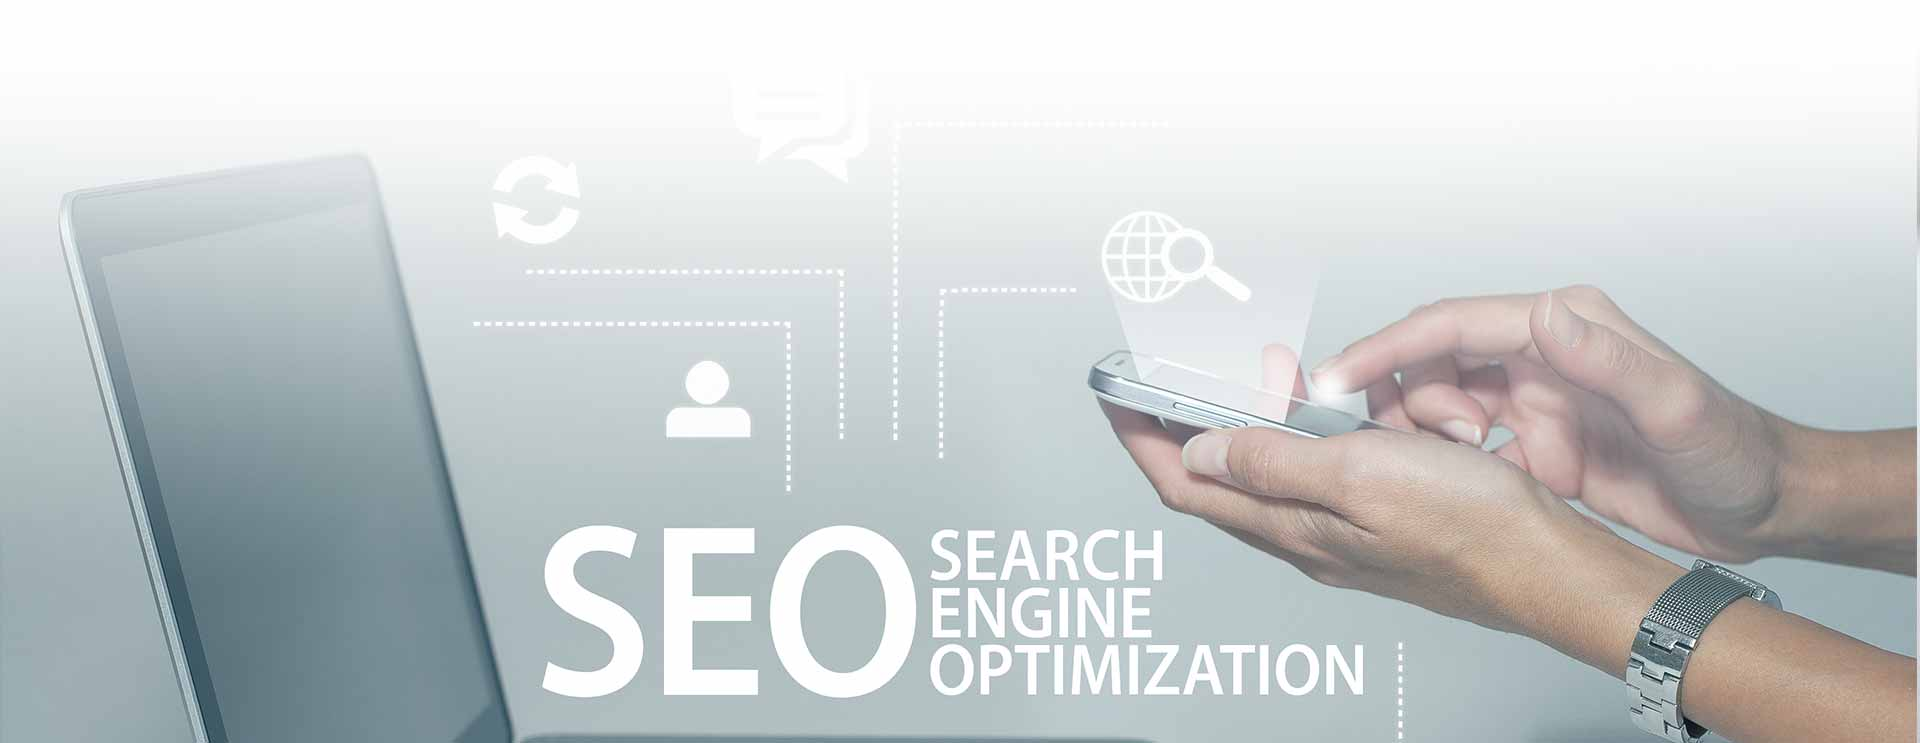 SEO Services Cyprus-Search Engine Optimization Cyprus | JPP